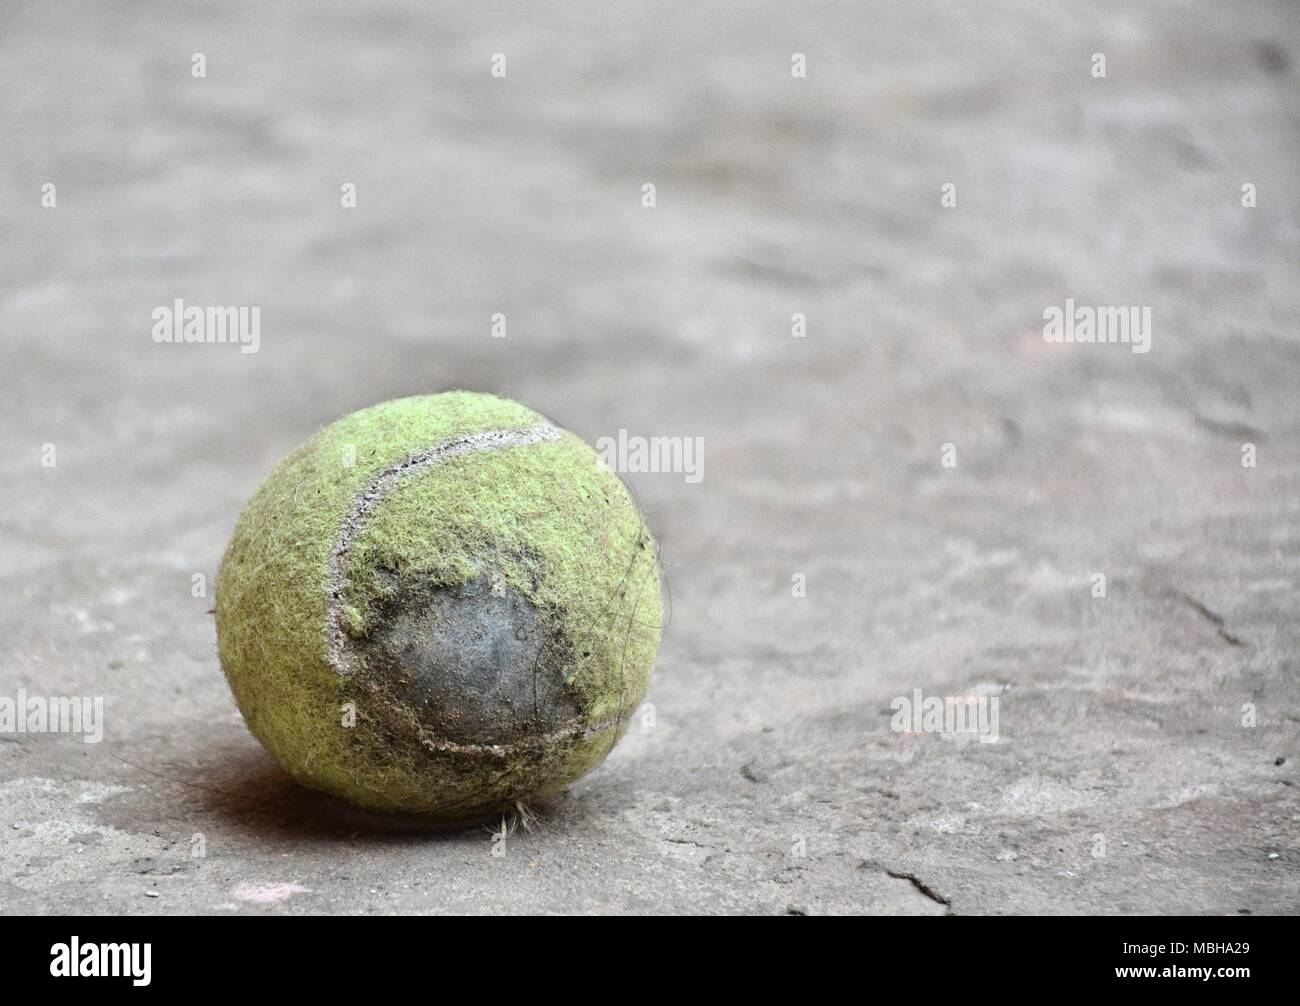 Worn Out Tennis Ball On Concrete Floor With Some Hair And Feather on it - Stock Image